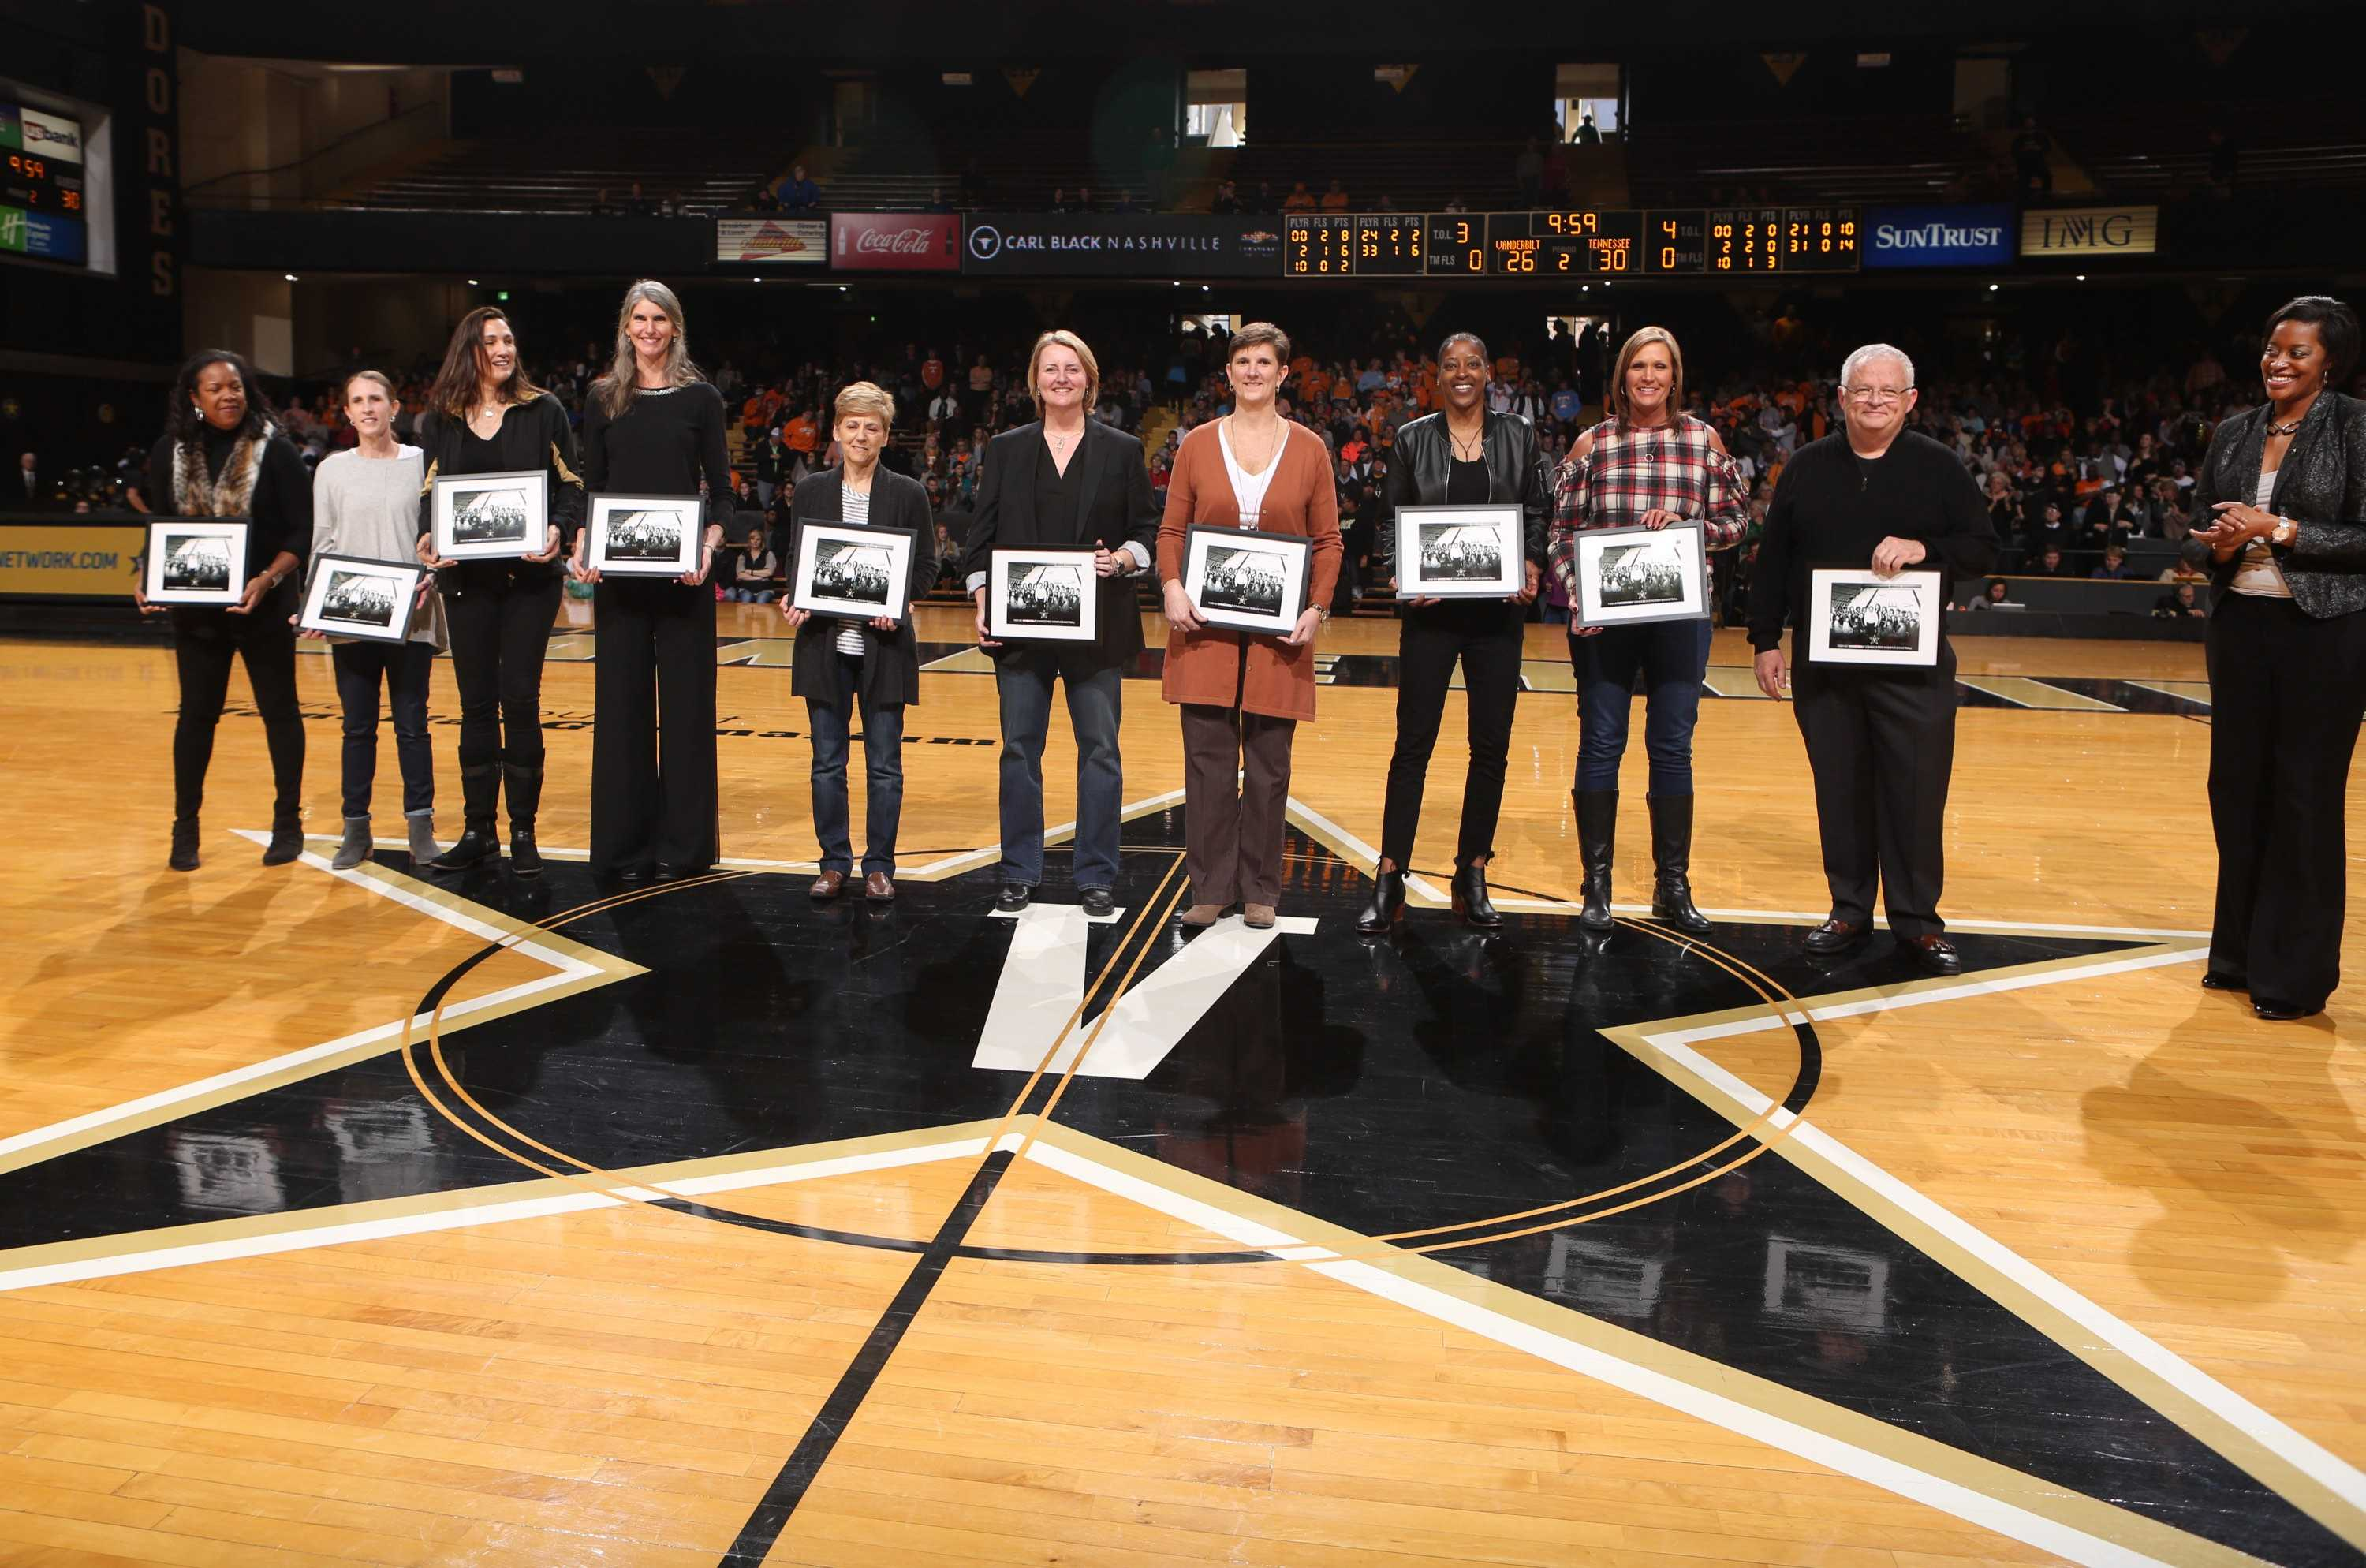 1993 Women's Final Four team reminisces on historic run 25 years later